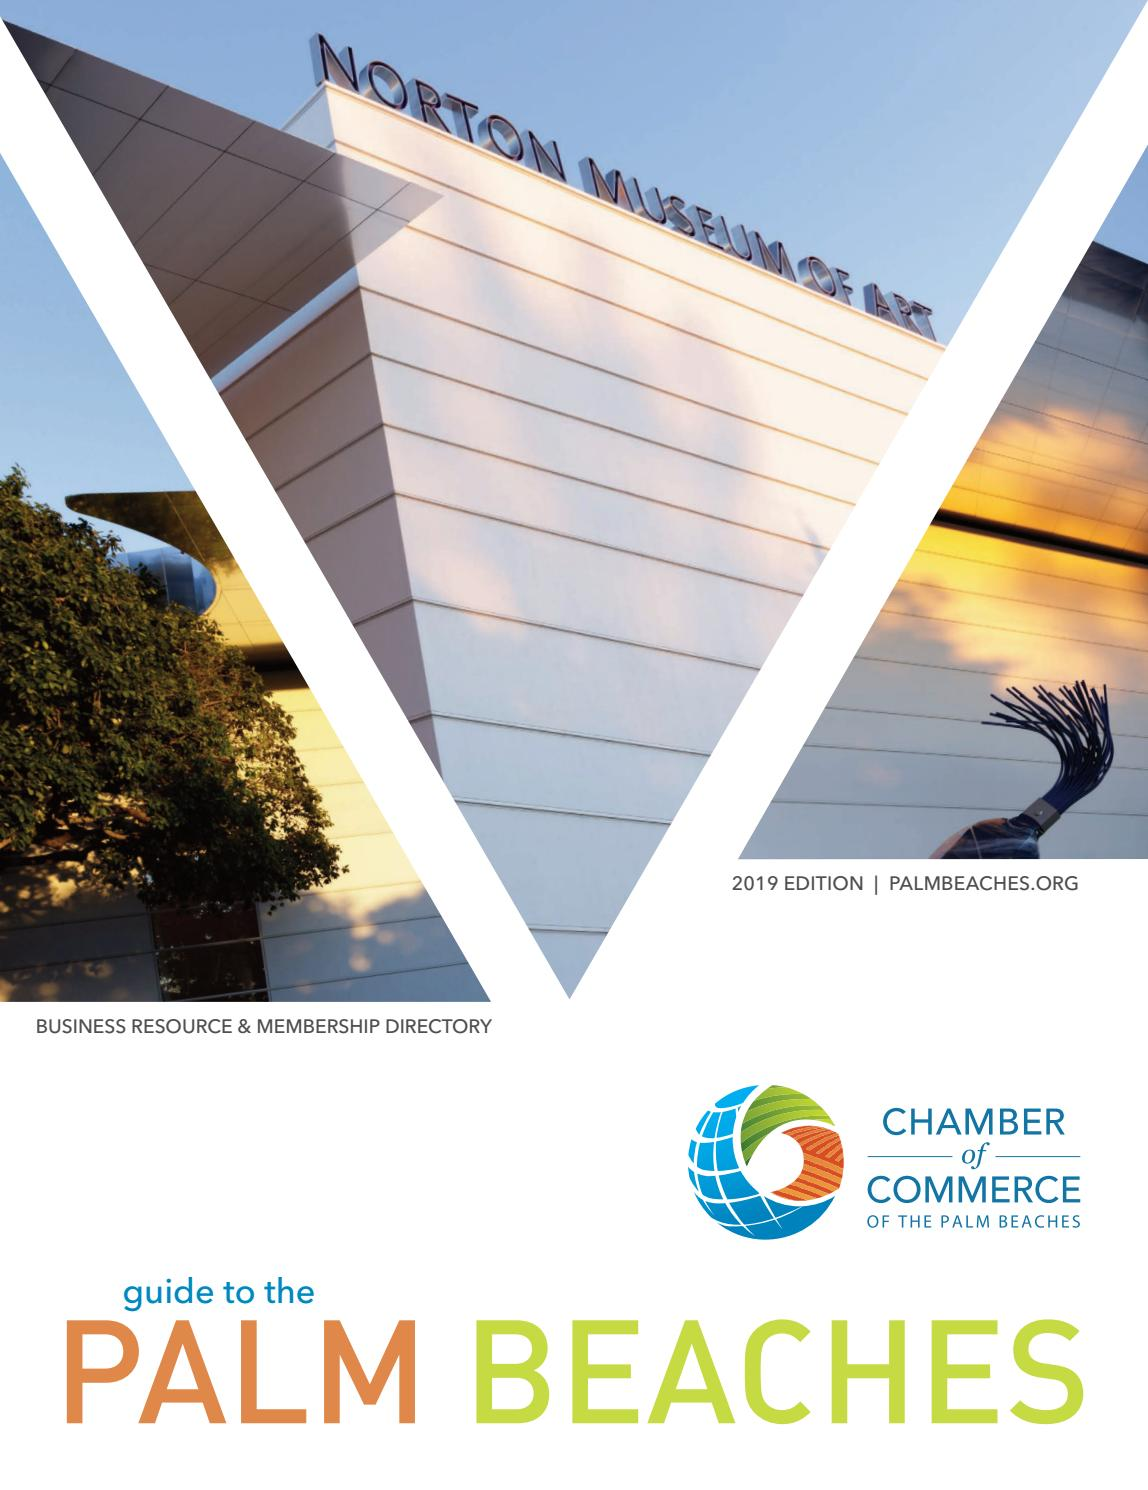 2019 Guide to the Palm Beaches by Chamber of Commerce of the